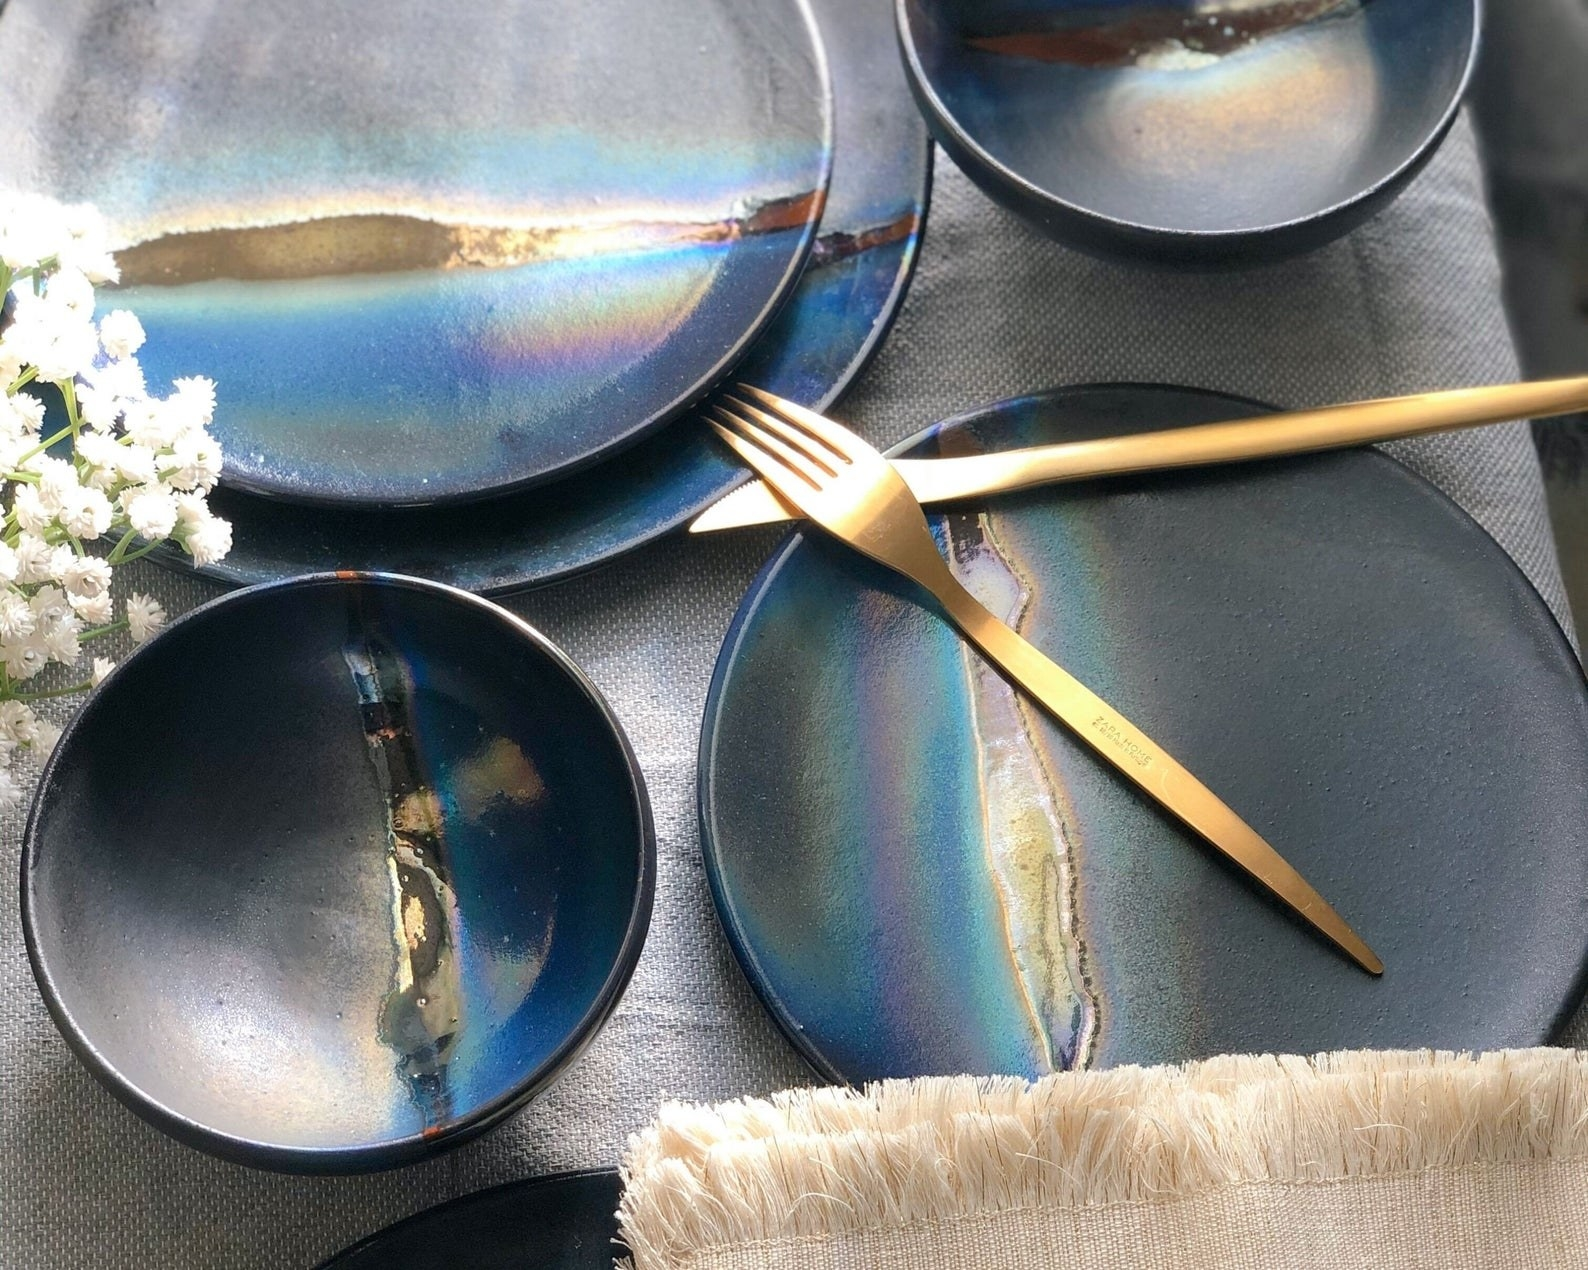 the complete black dinner set with blue and hold metallic luster on a table set with gold utensils